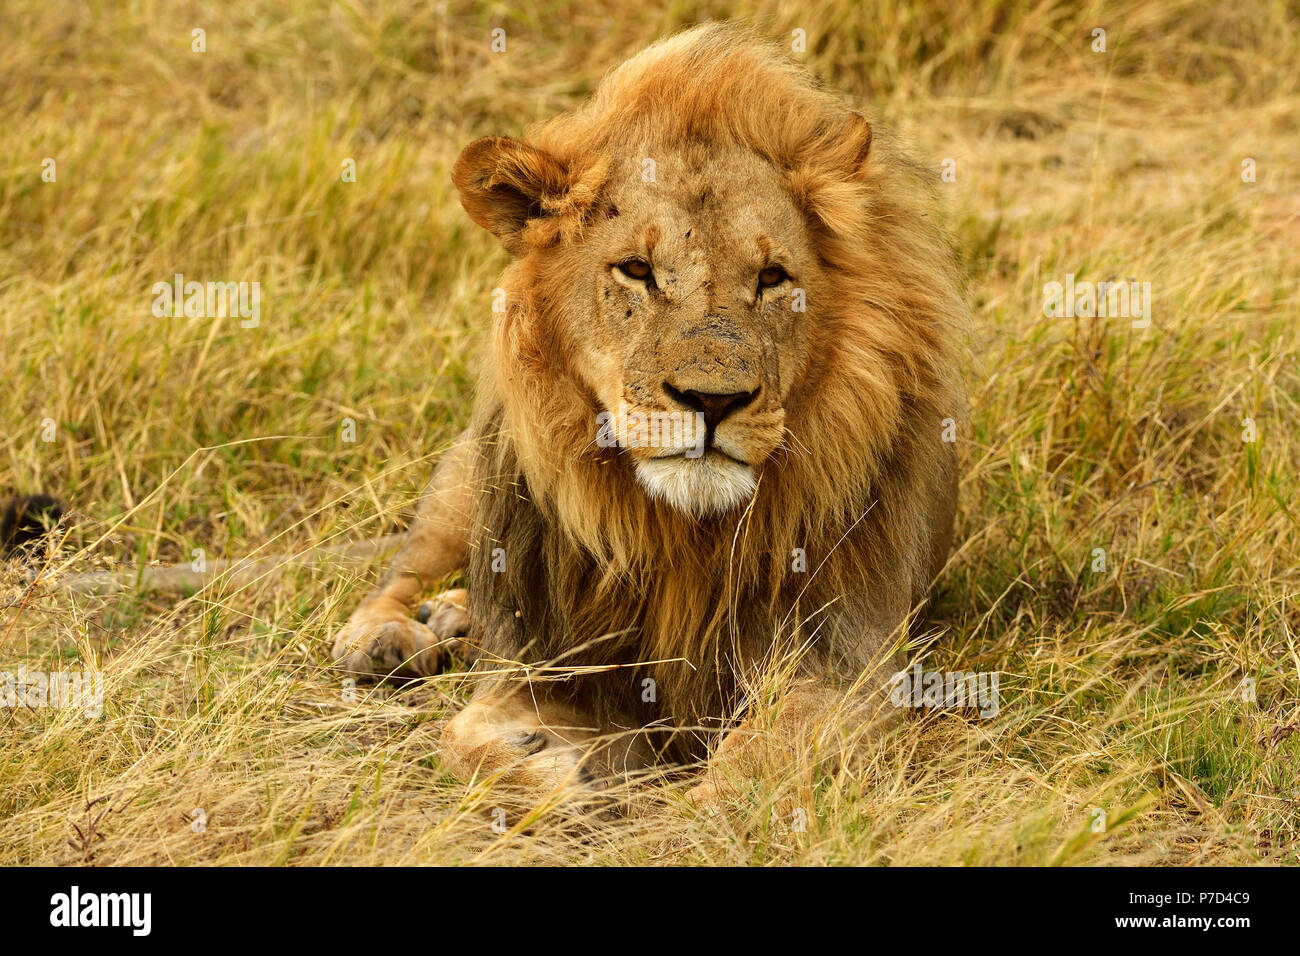 Lion (Panthera leo), male lying in the dry grass, Moremi National Park, Moremi Wildlife Reserve, Okavango Delta, Botswana - Stock Image